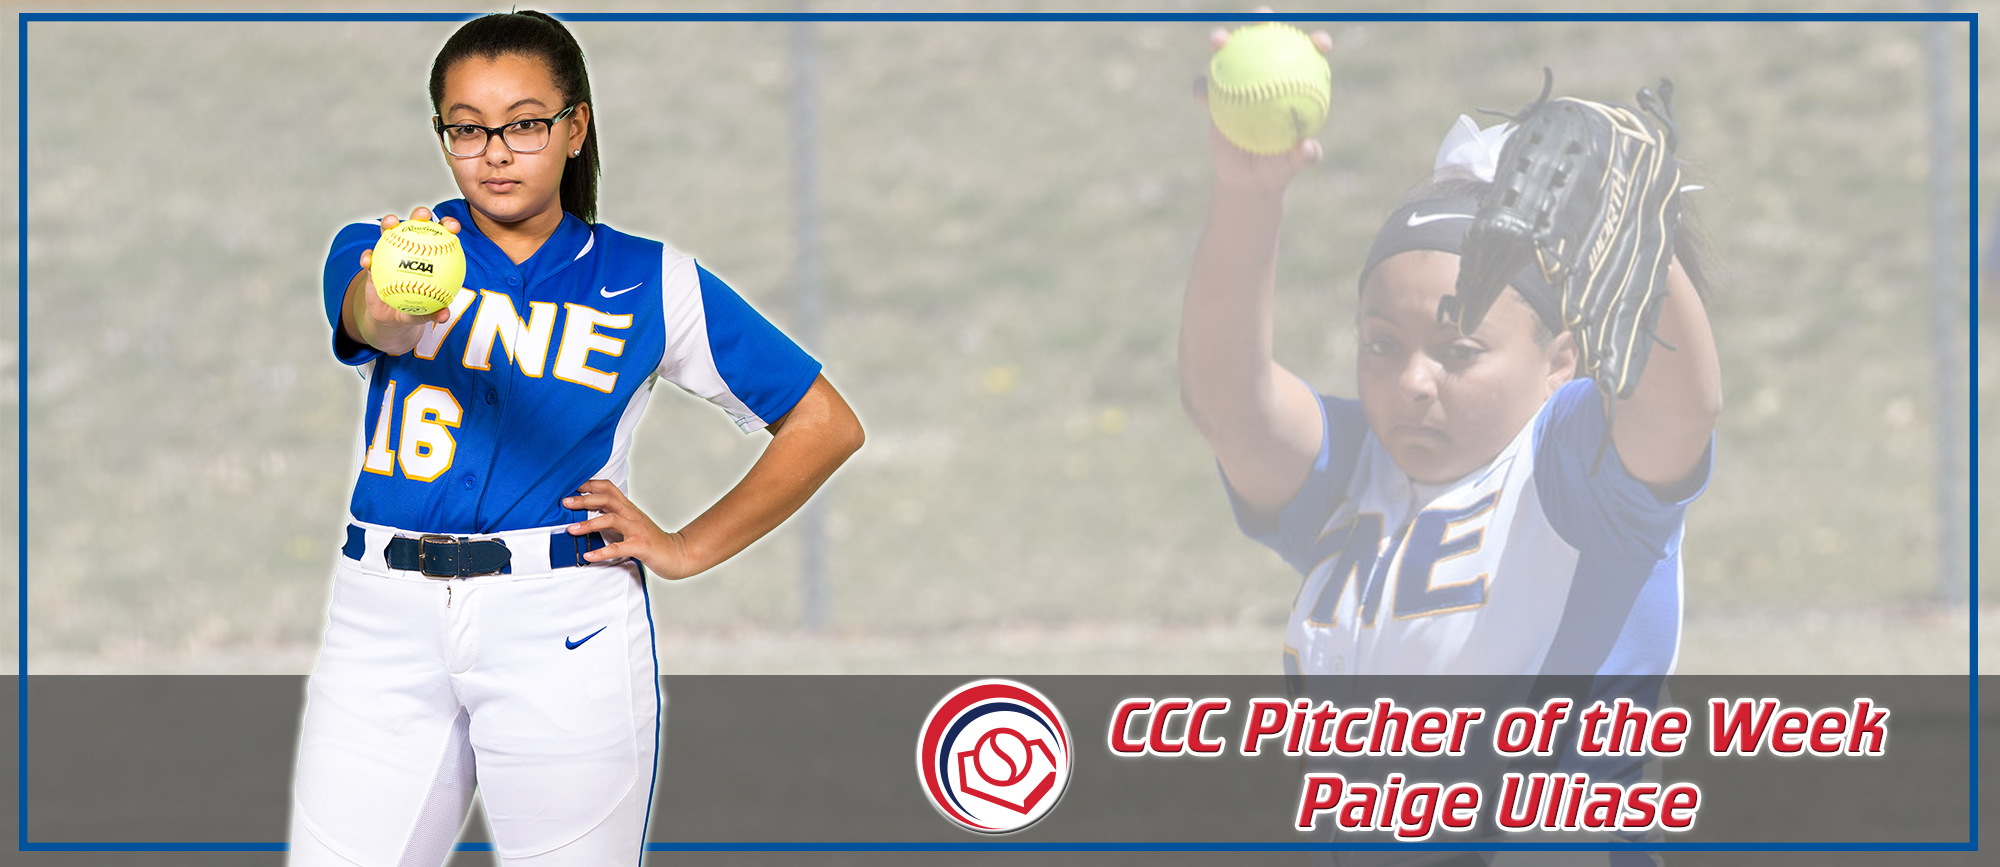 Paige Uliase Earns Third Career CCC Pitcher of the Week Honor